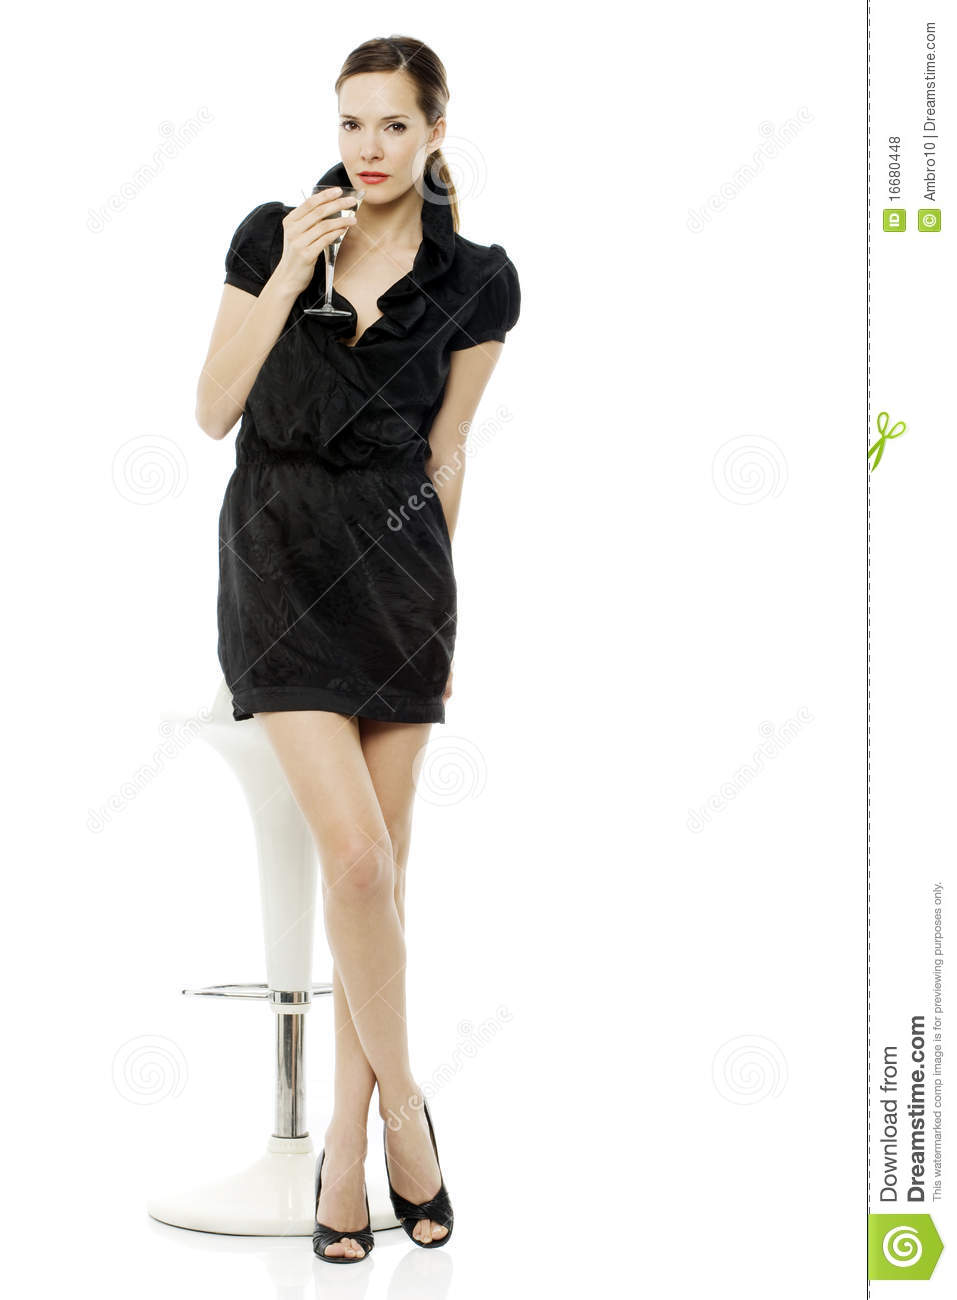 Lastest Mature Pretty Blonde Woman Dressed Up As TinkerbellJPG 3 Comments